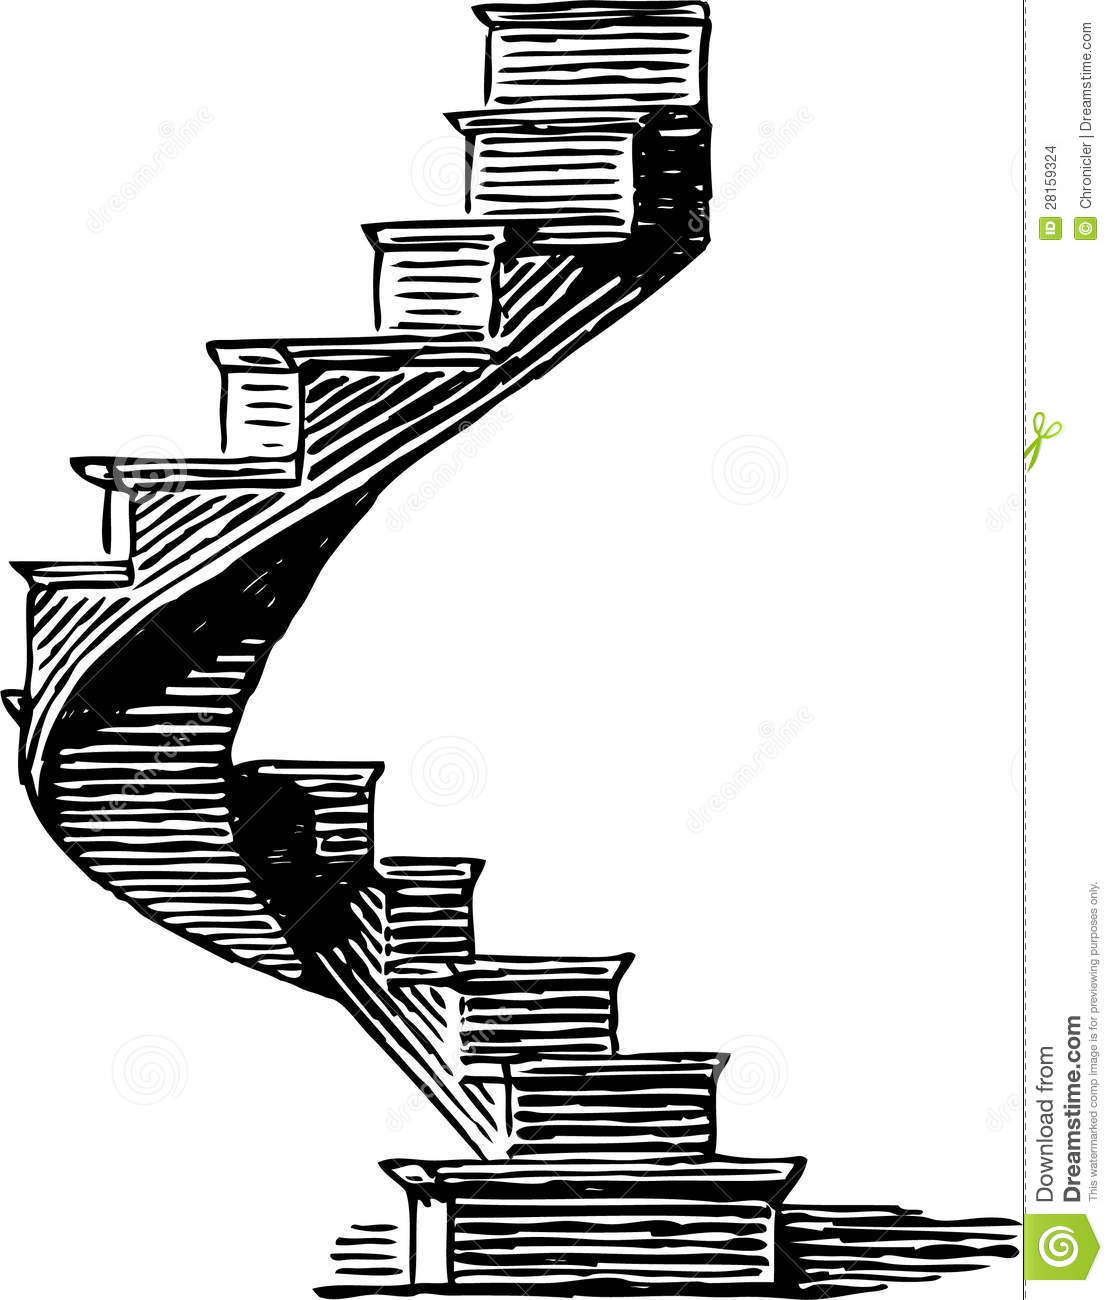 spiral staircase clipart clipart suggest staircase clip art in football stadium stairs clip art spanish